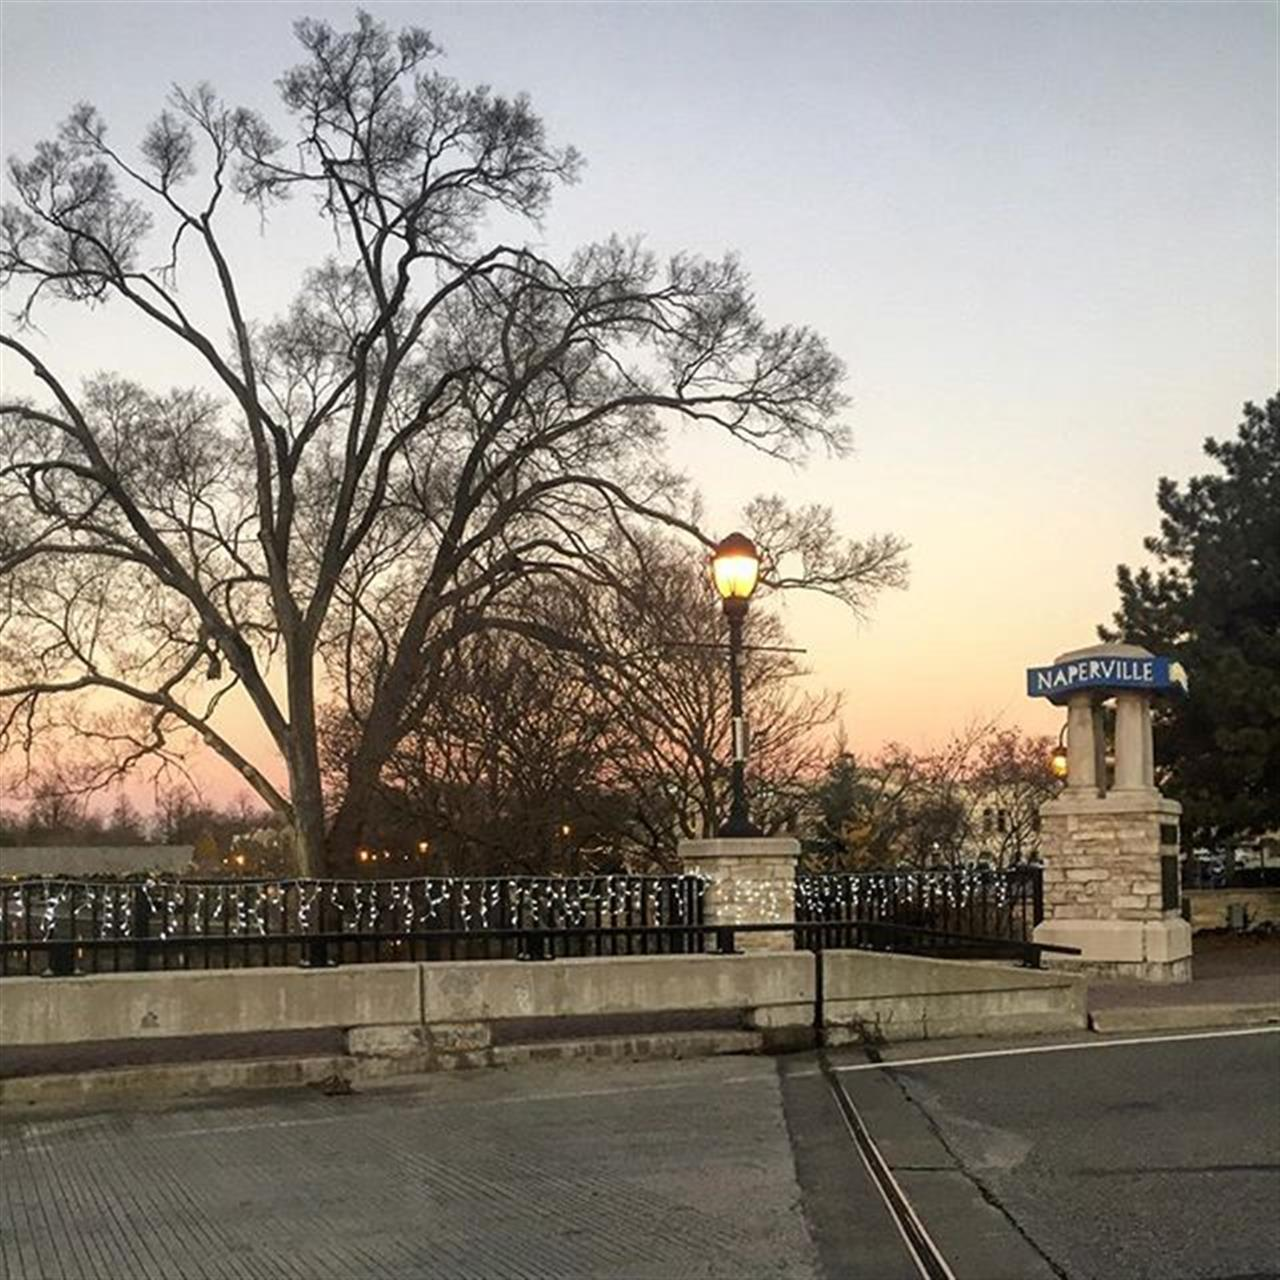 Sunrise over @napervilleil holiday decorations. It's that festive time of year in Chicagoland's popular suburb. #naperville #chicagosuburbs #leadingrelocal #bairdwarner #realestate #riverwalk #sunrise #commutershot #commuters